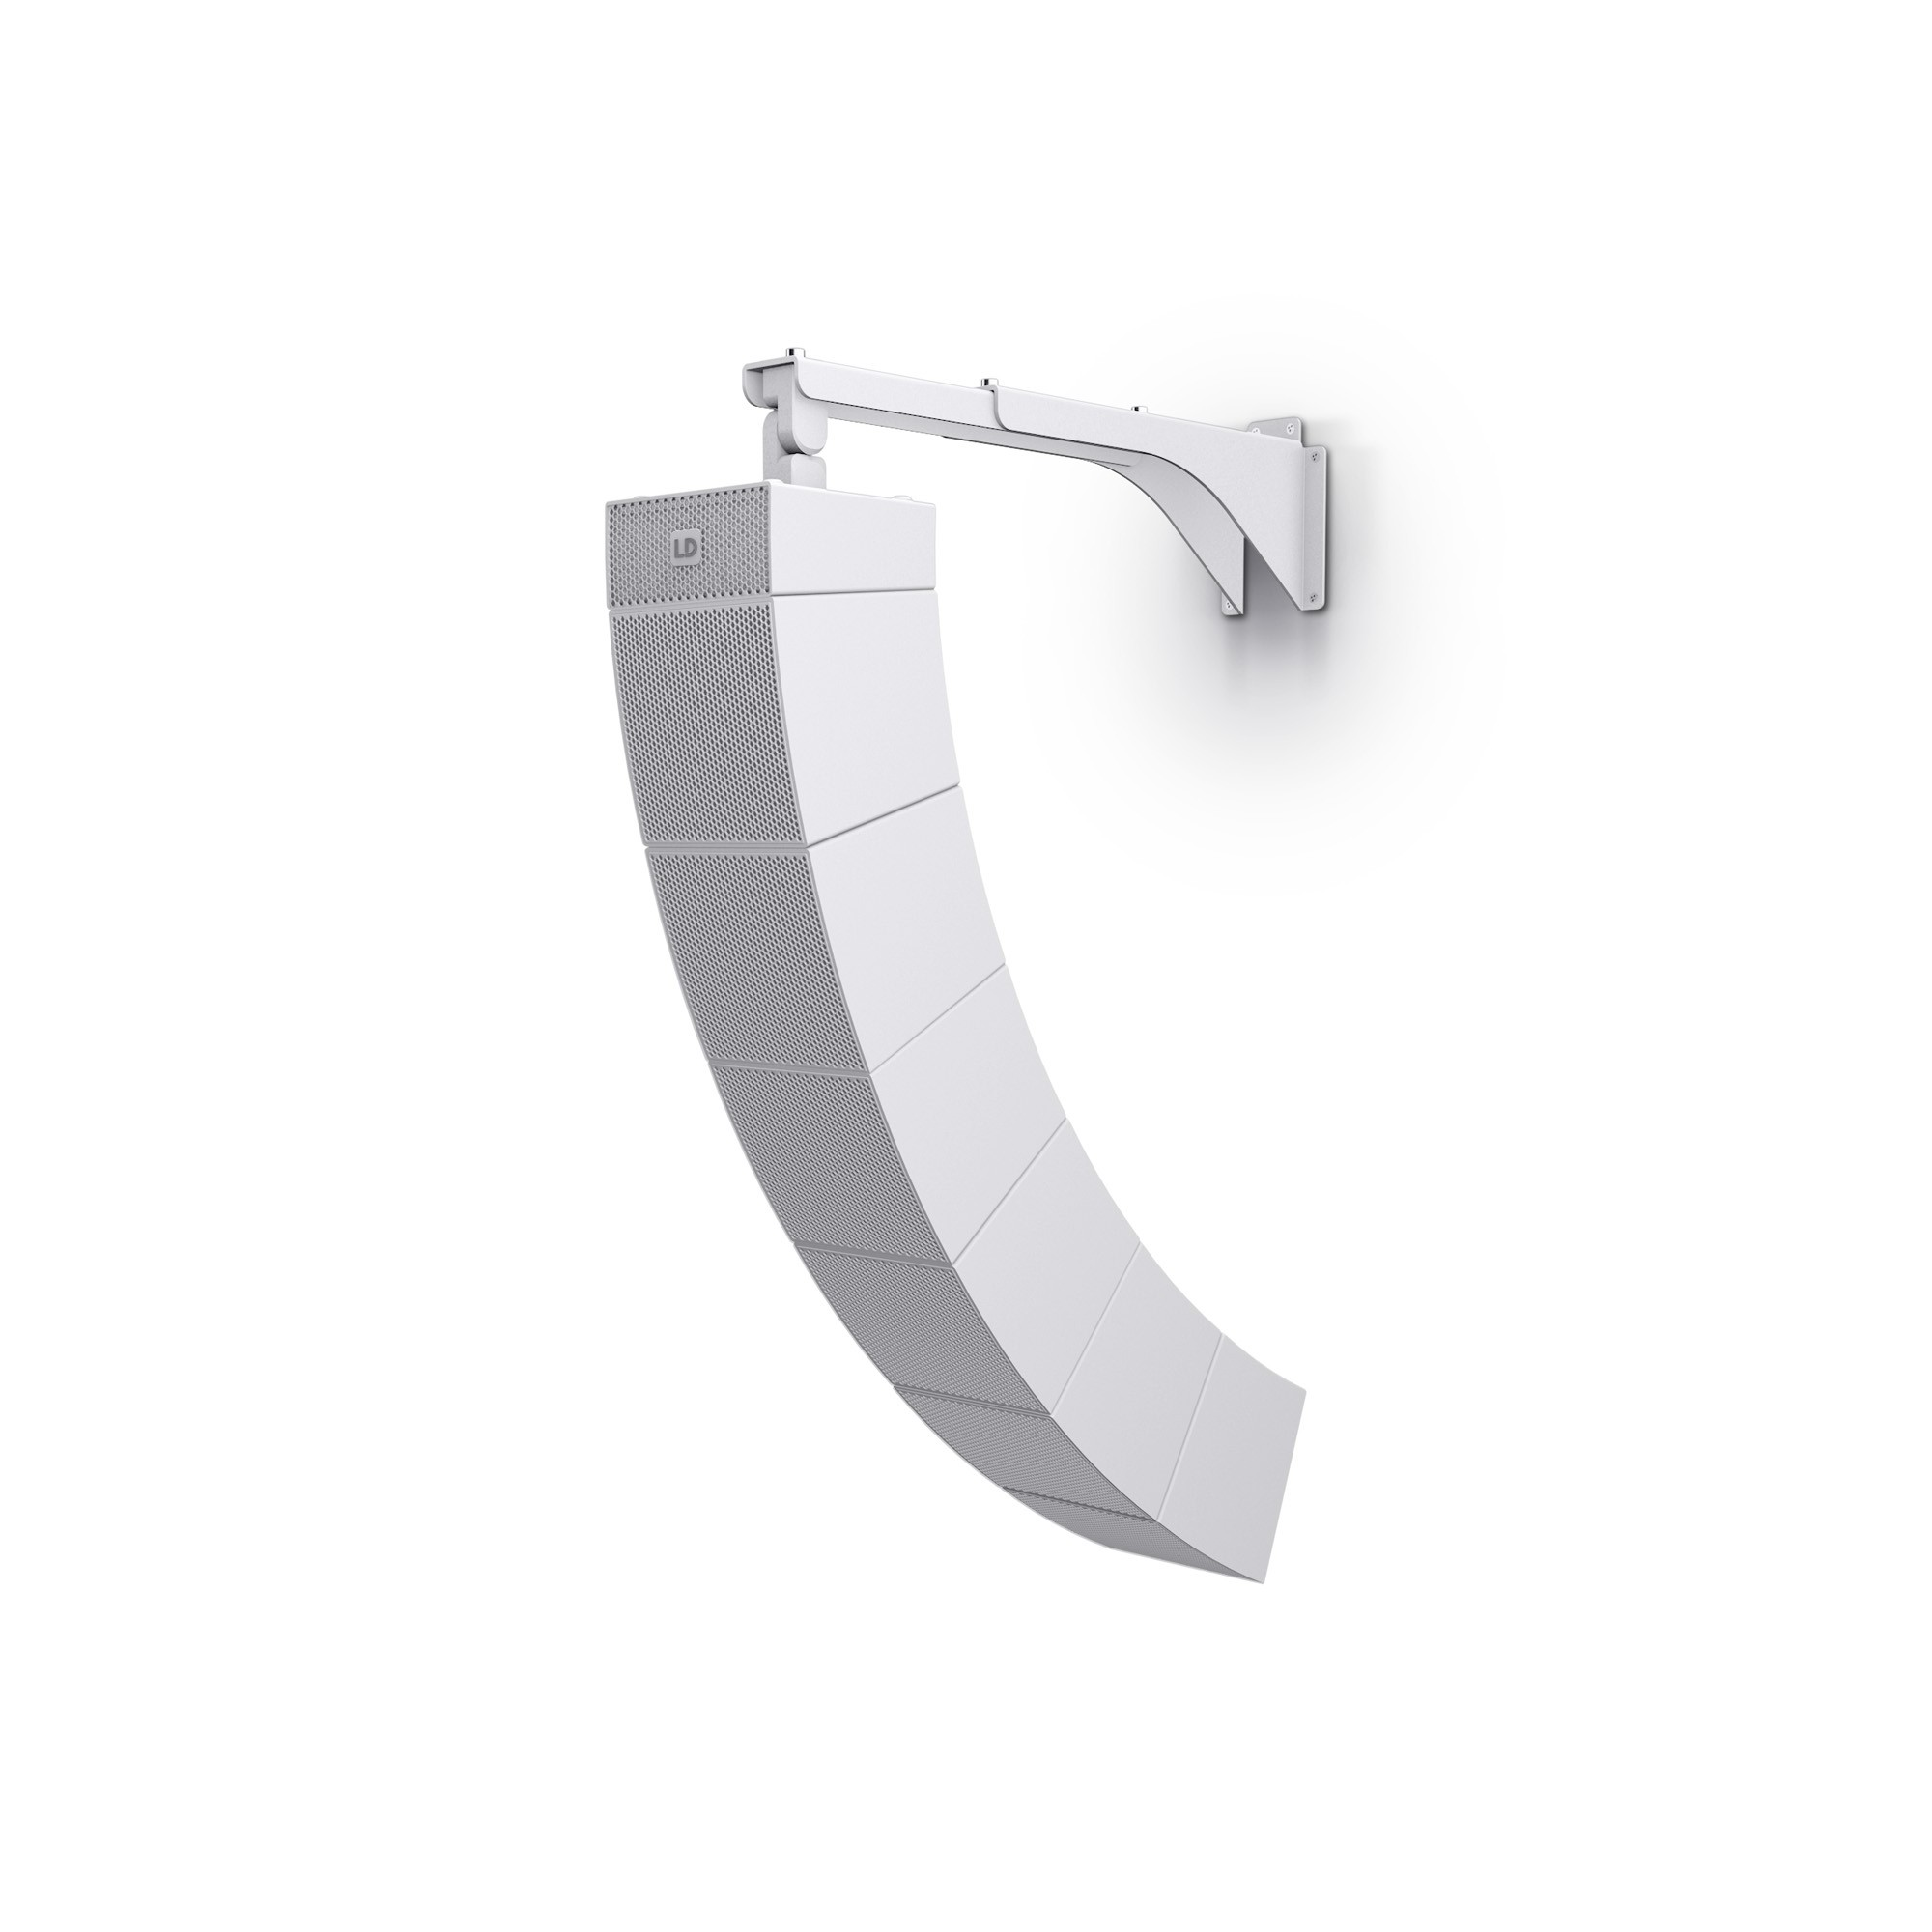 CURV 500 WMBL W Curv 500® Tilt & Swivel Wall Mount Bracket for up to 6 Satellites White